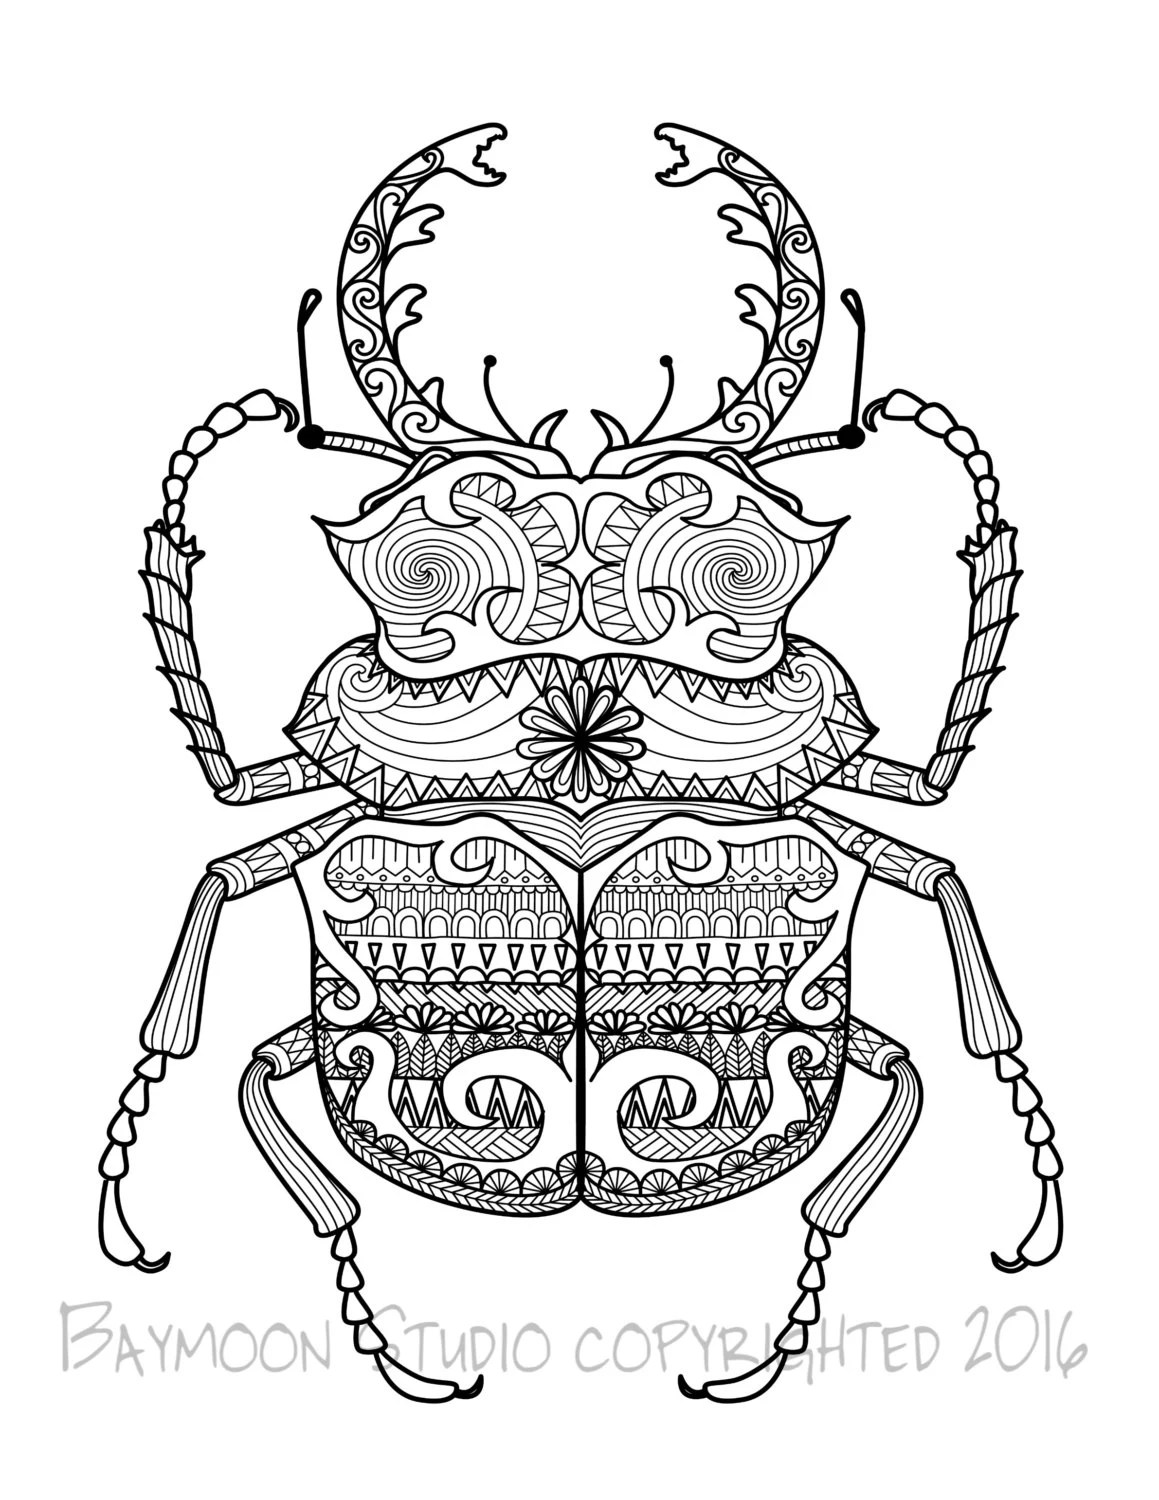 Scarab Beetle Coloring Page Printable Coloring by